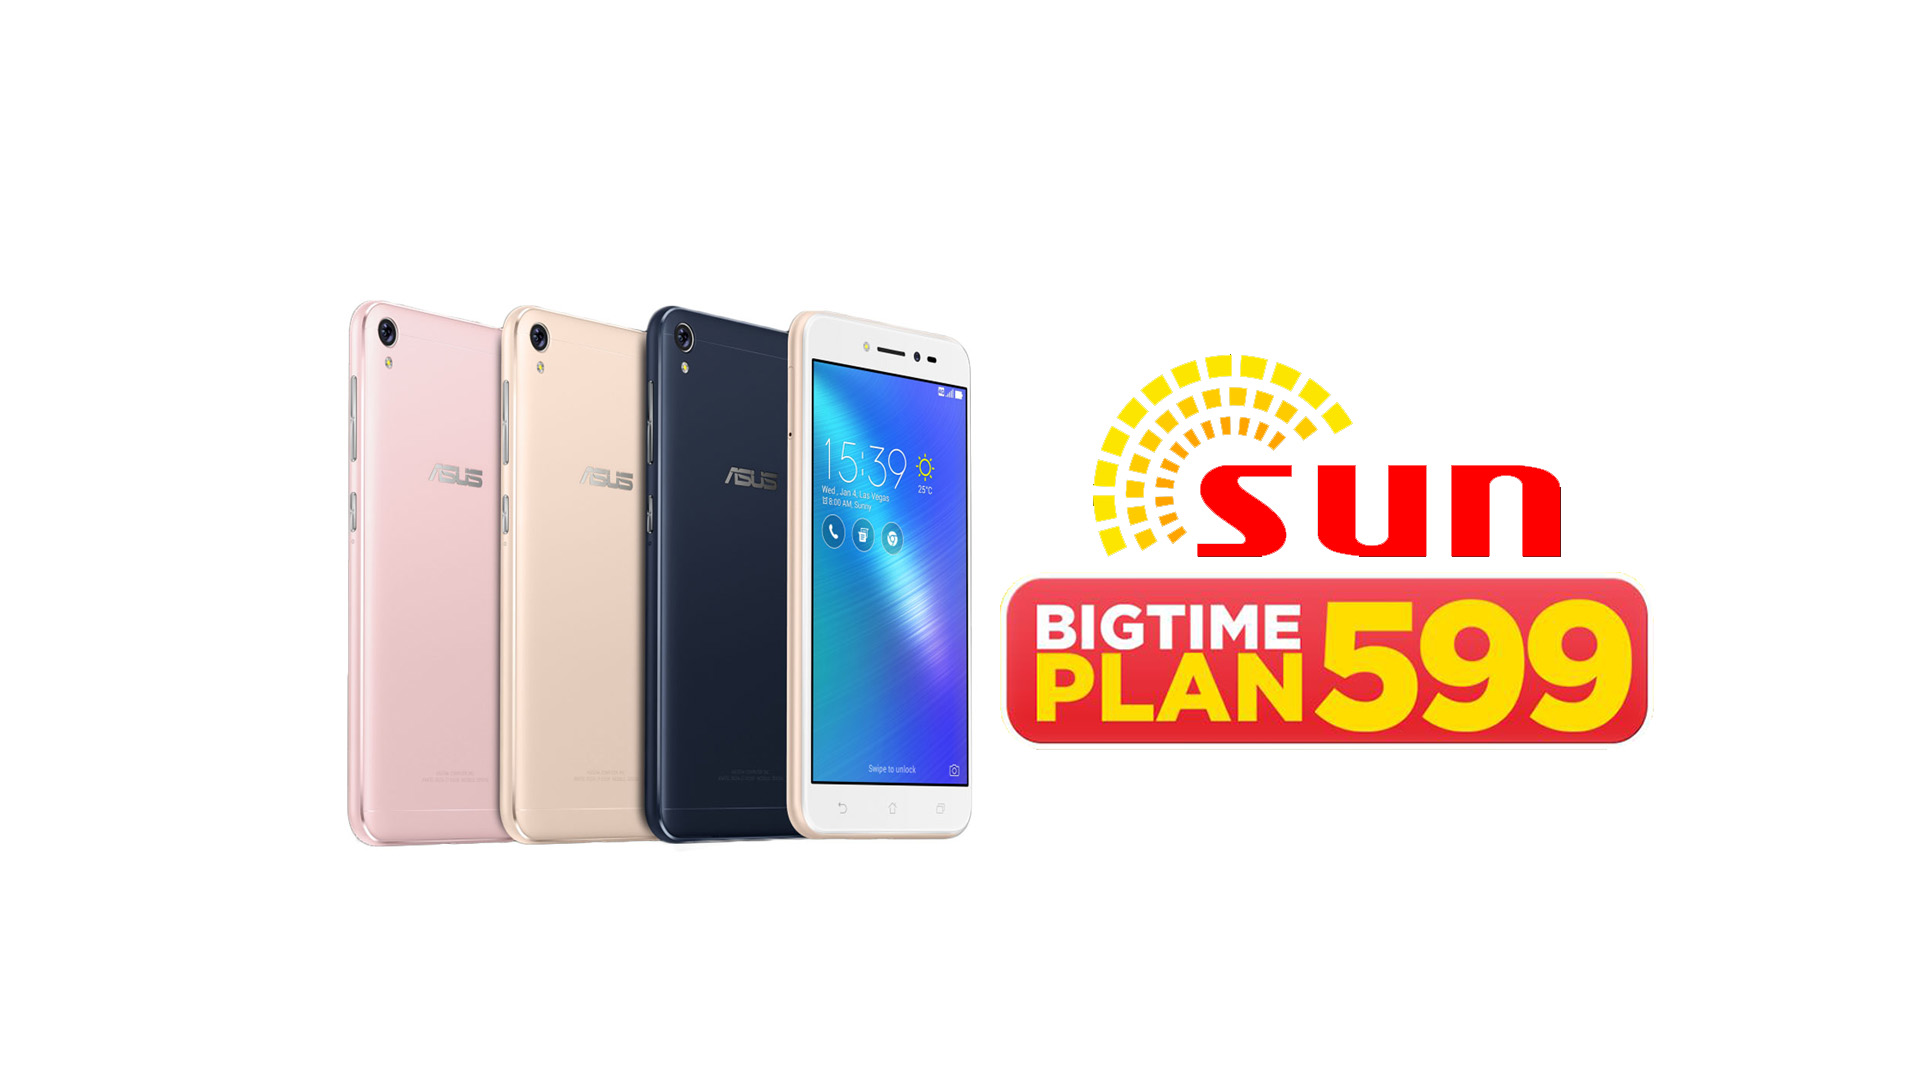 Sun - Zenfone Live, Now Free at SUN Bigtime Plan 599